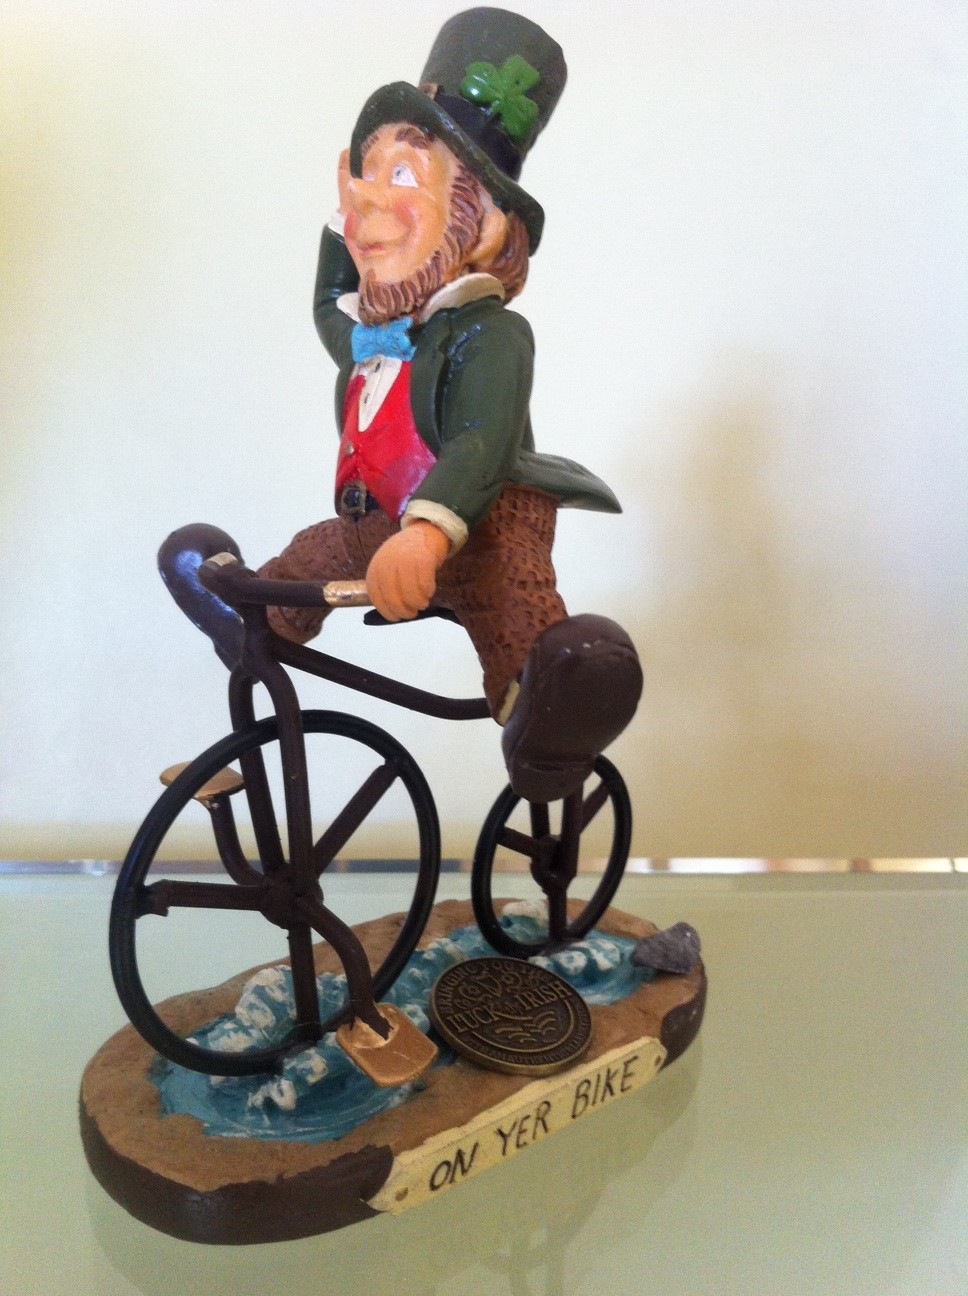 How about winning this KOM or QOM prize! On yer bike, lads and lasses!